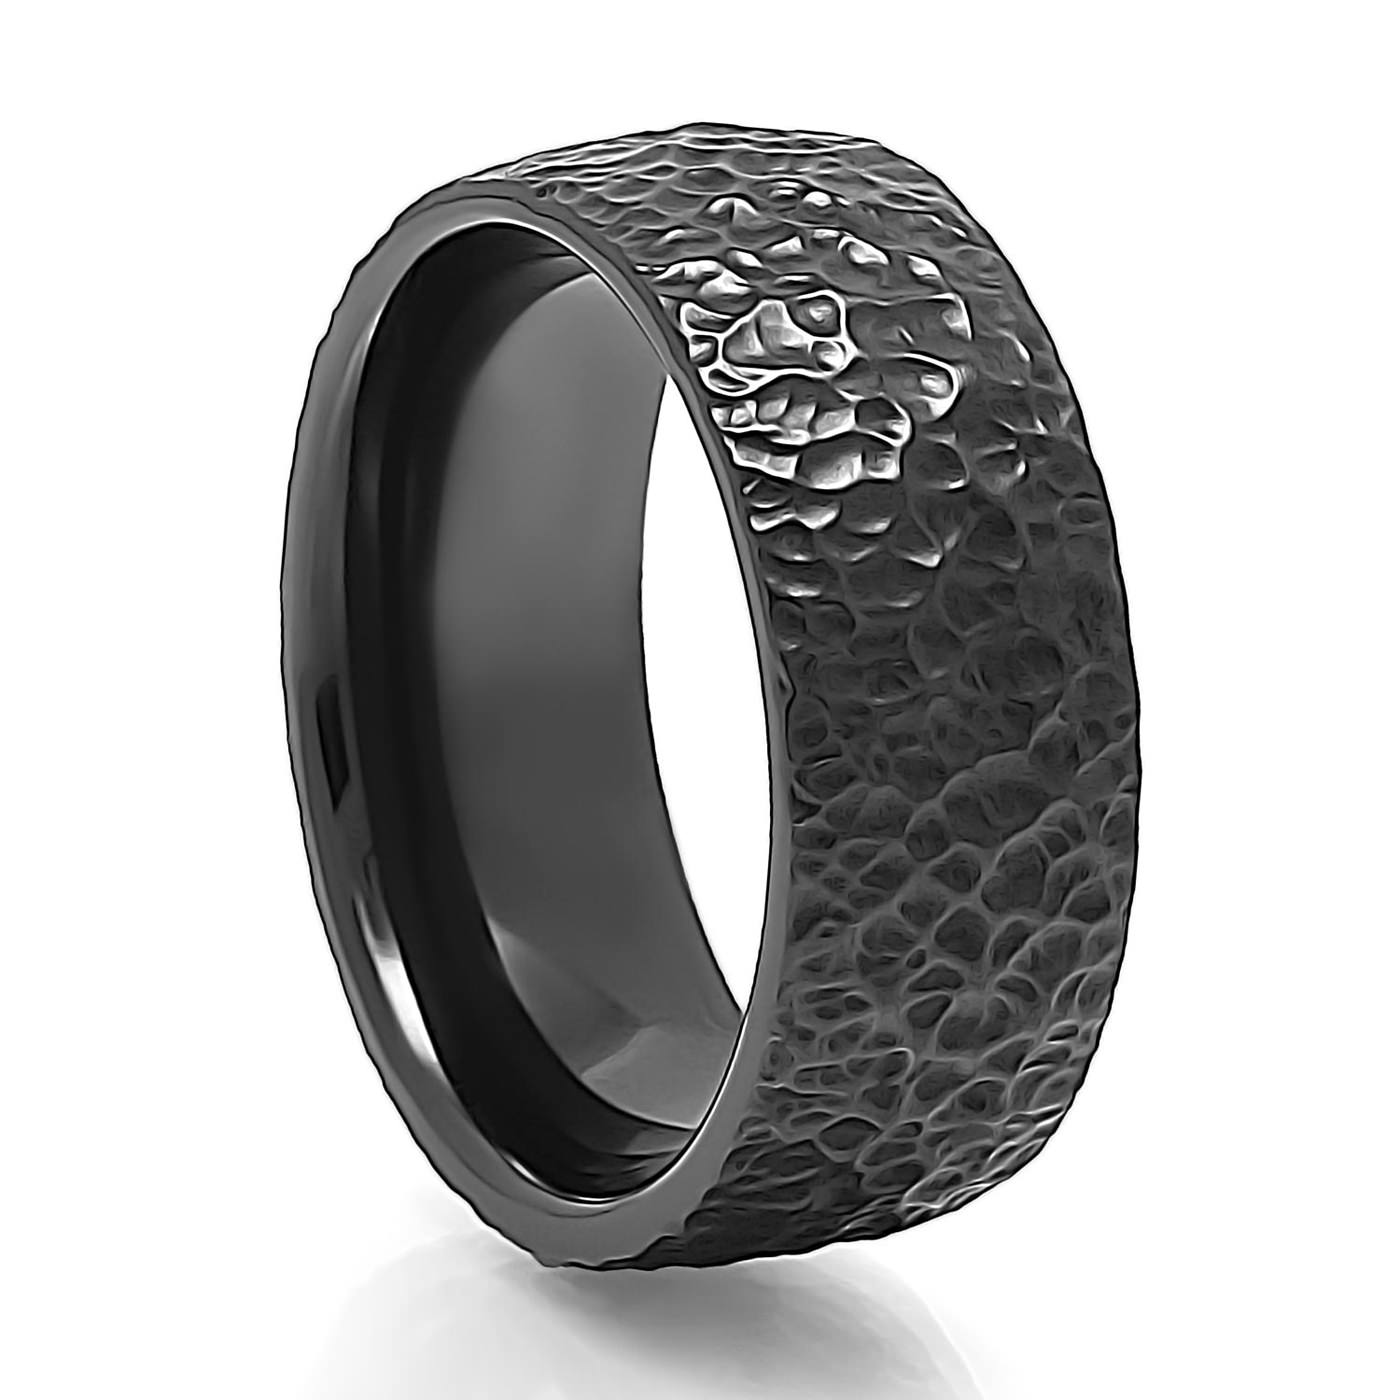 s bands with men wedding cobalt dp black com band ring amazon real diamond love